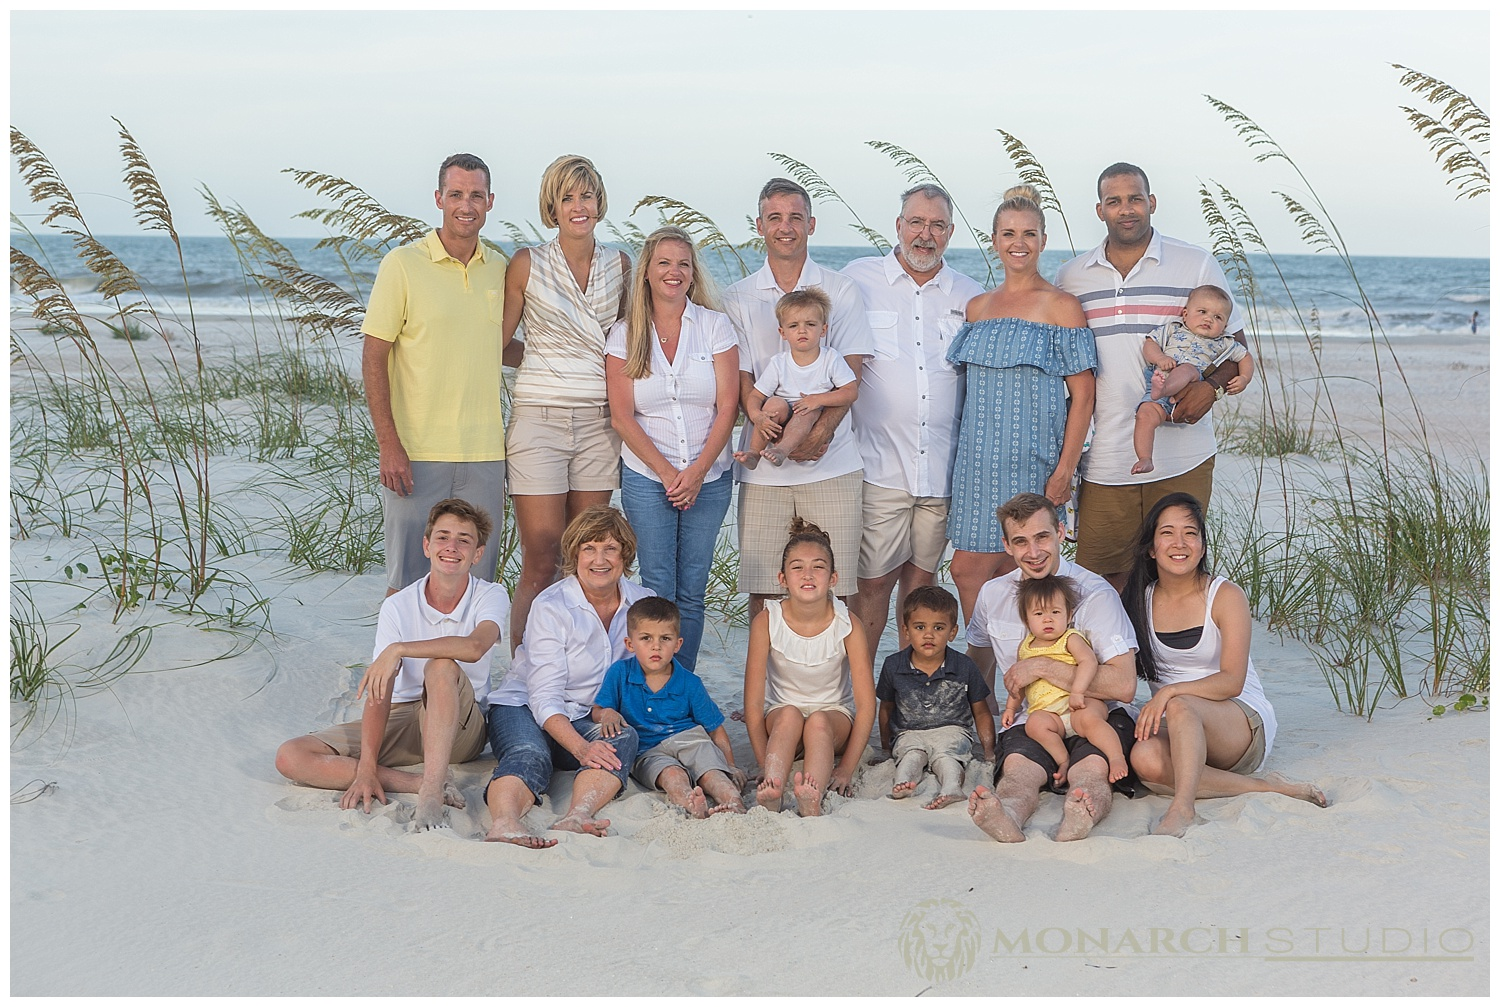 St. Augustine Beach Family Vacation Photography -8.JPG